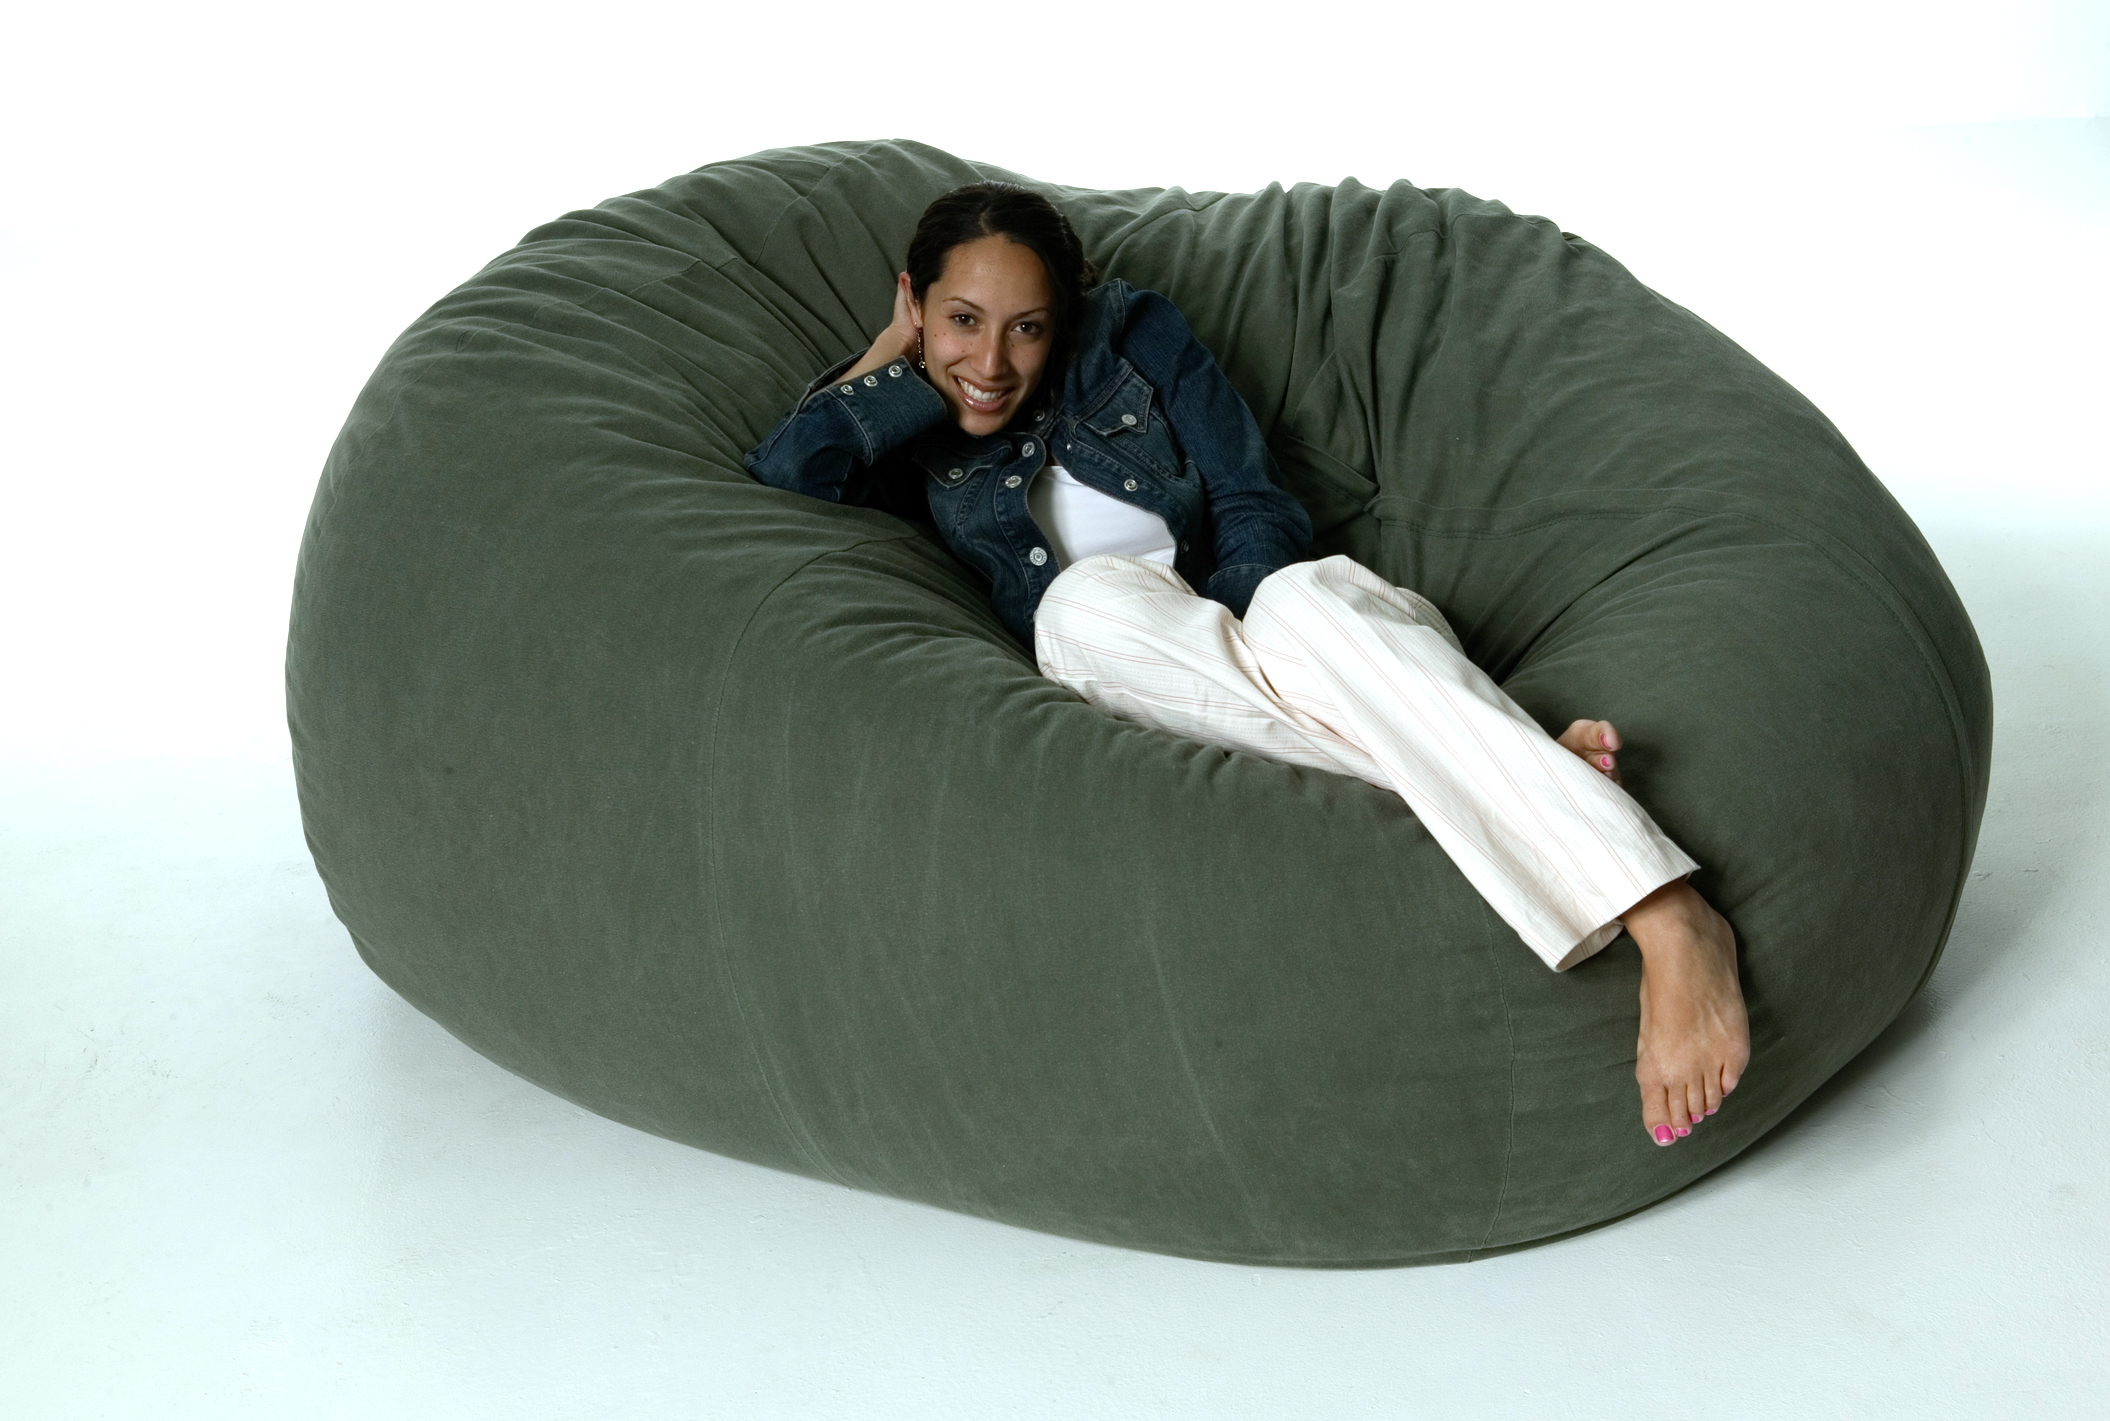 Bean bag chairs price - Bean Bag Chairs Price 20